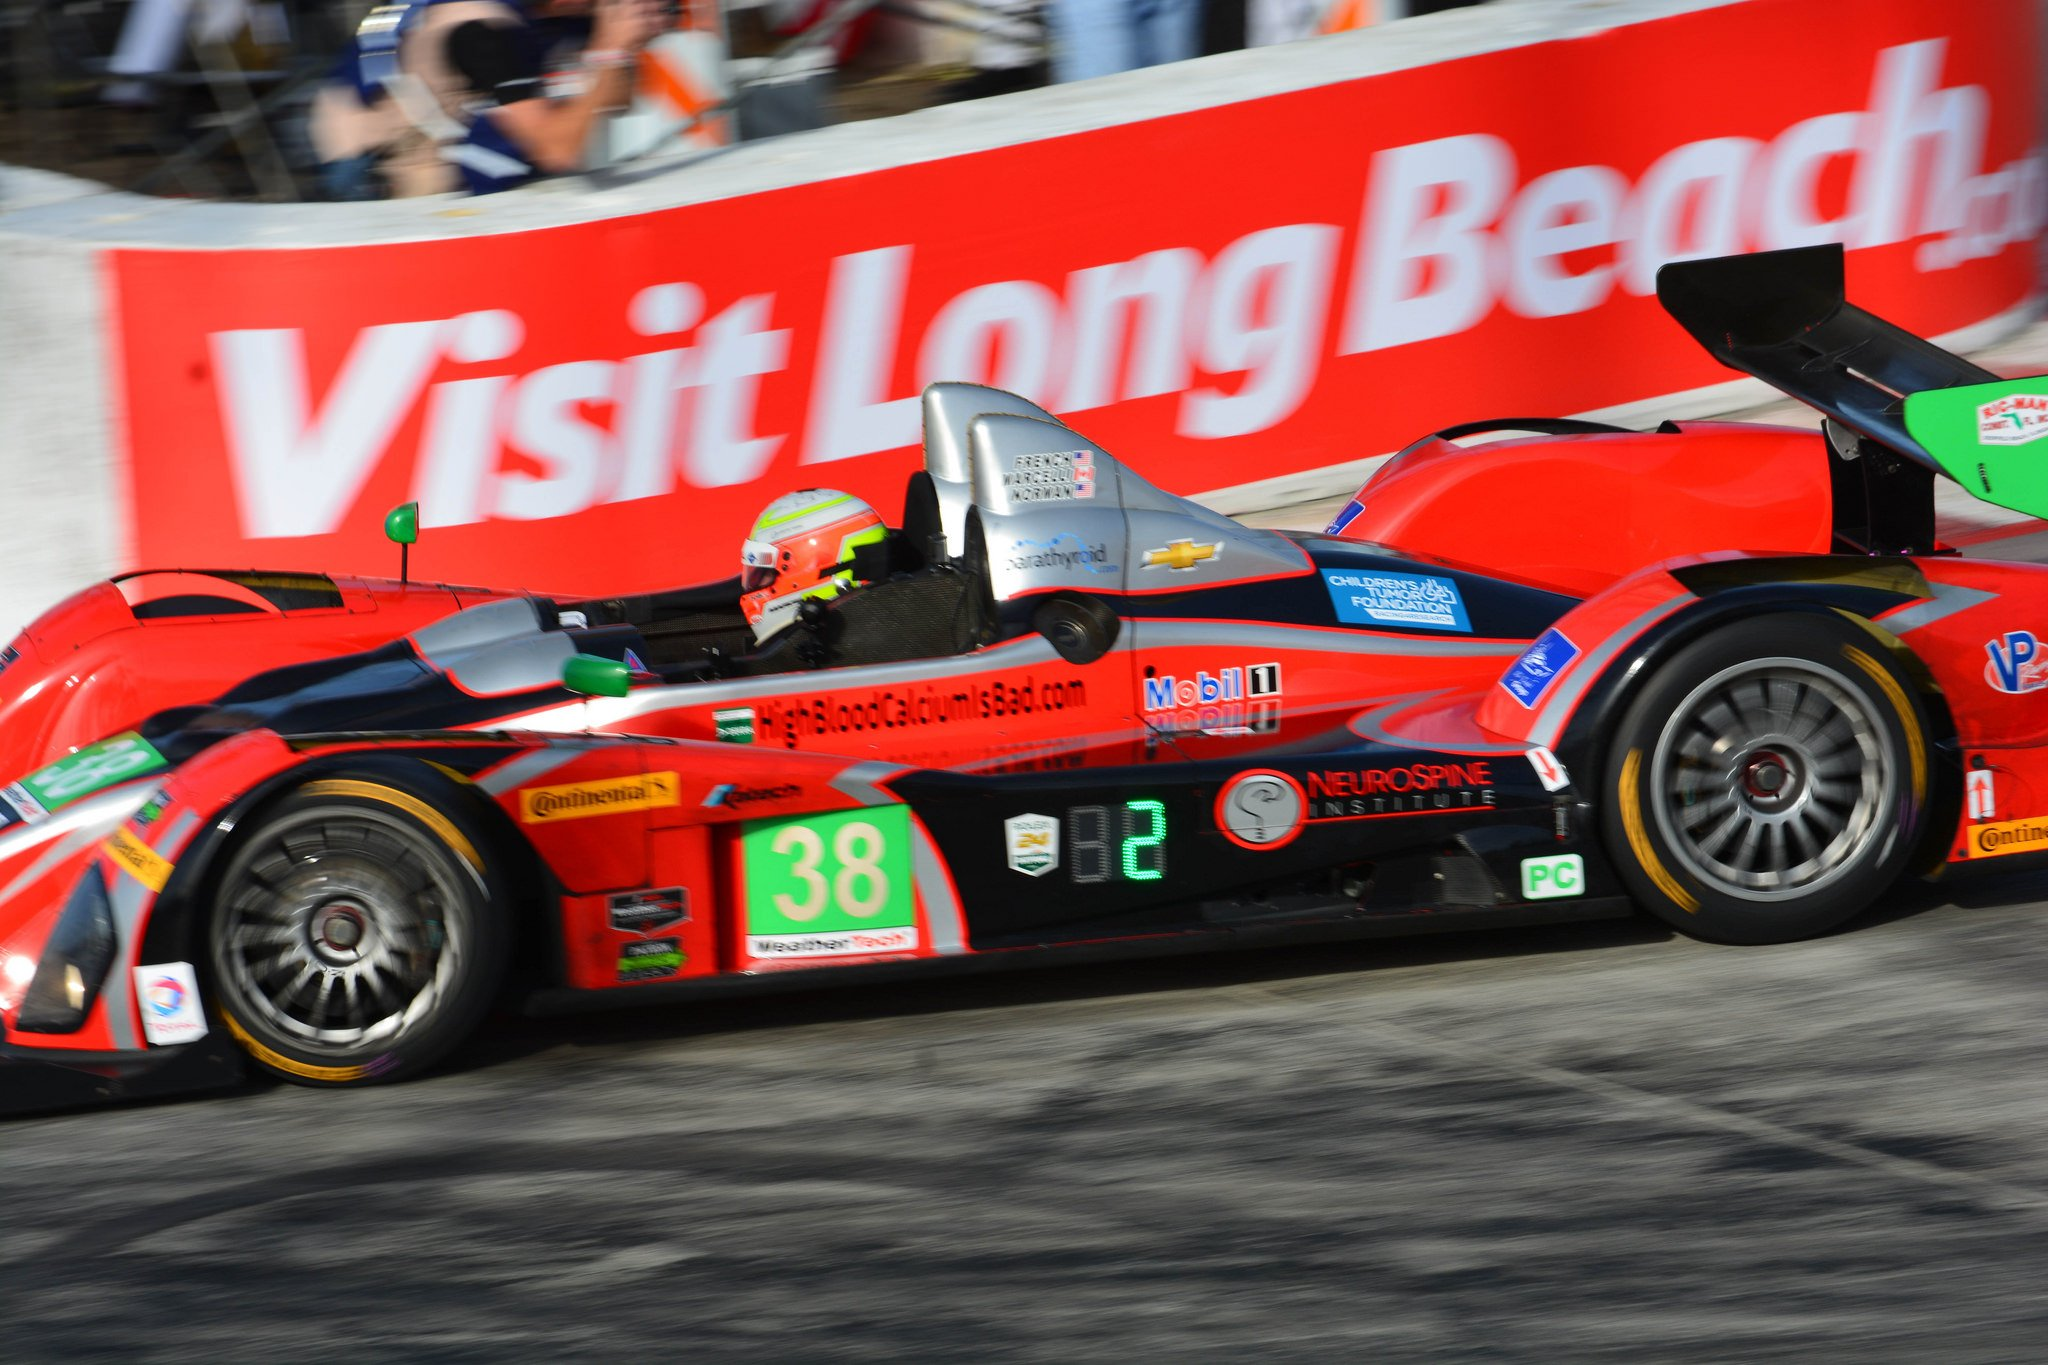 Long Beach Visitors Guide Toyota Grand Prix of Long Beach | World In Four Day: A Travel & Lifestyle Blog